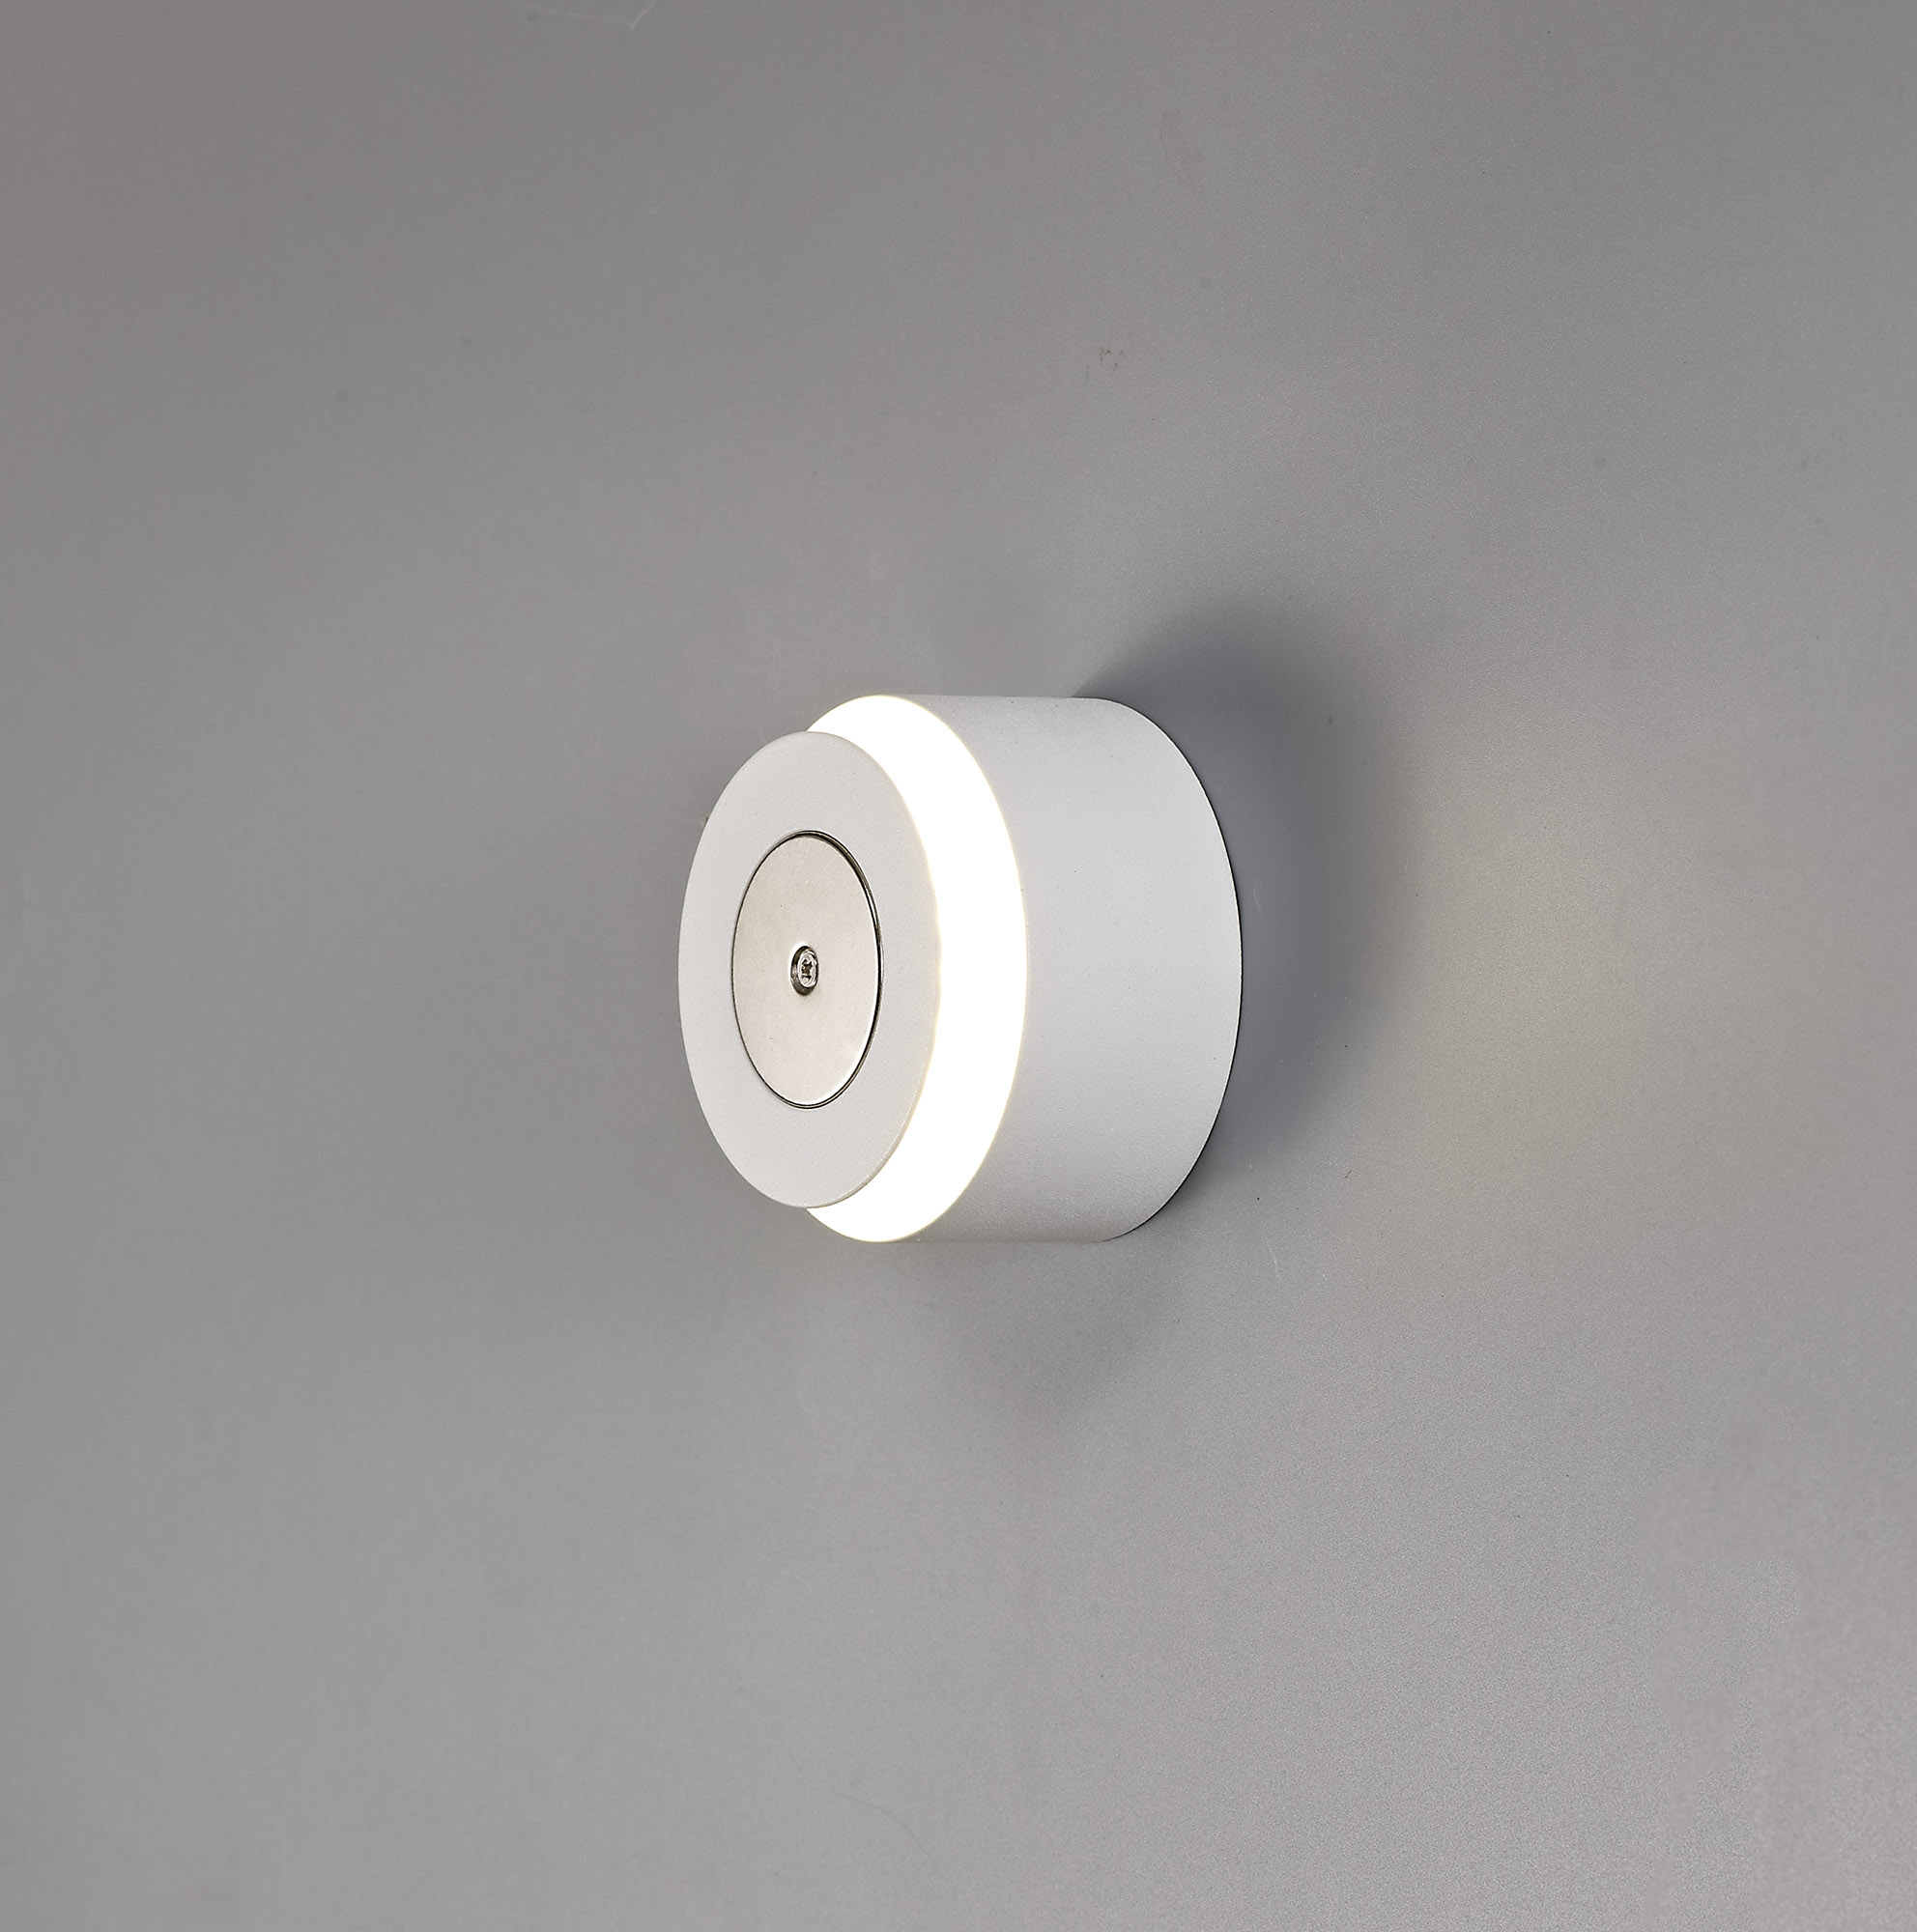 Magnetic Base Wall Lamp, 1 x 12W LED, 3000K, 498lm, Sand White, 3yrs Warranty